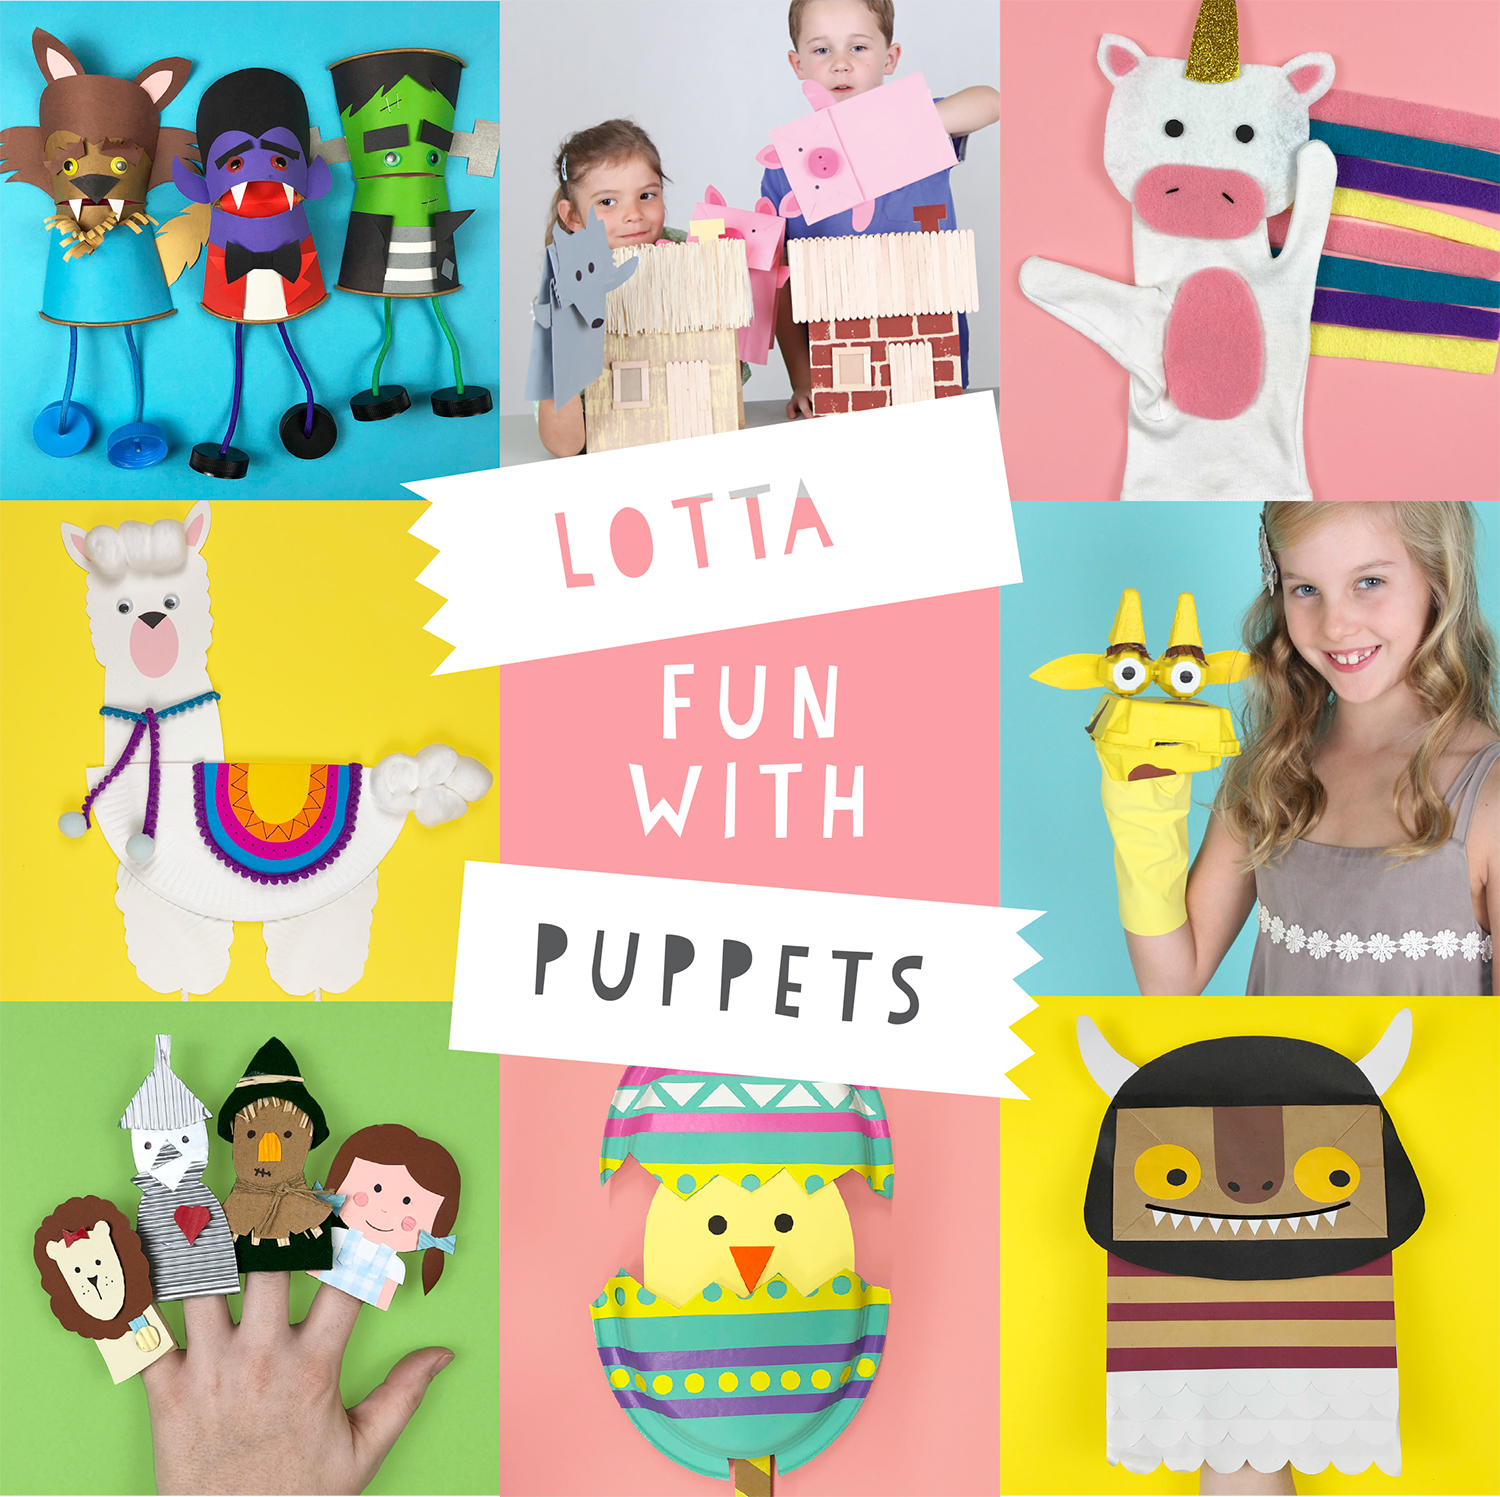 Lotta fun with puppets pin